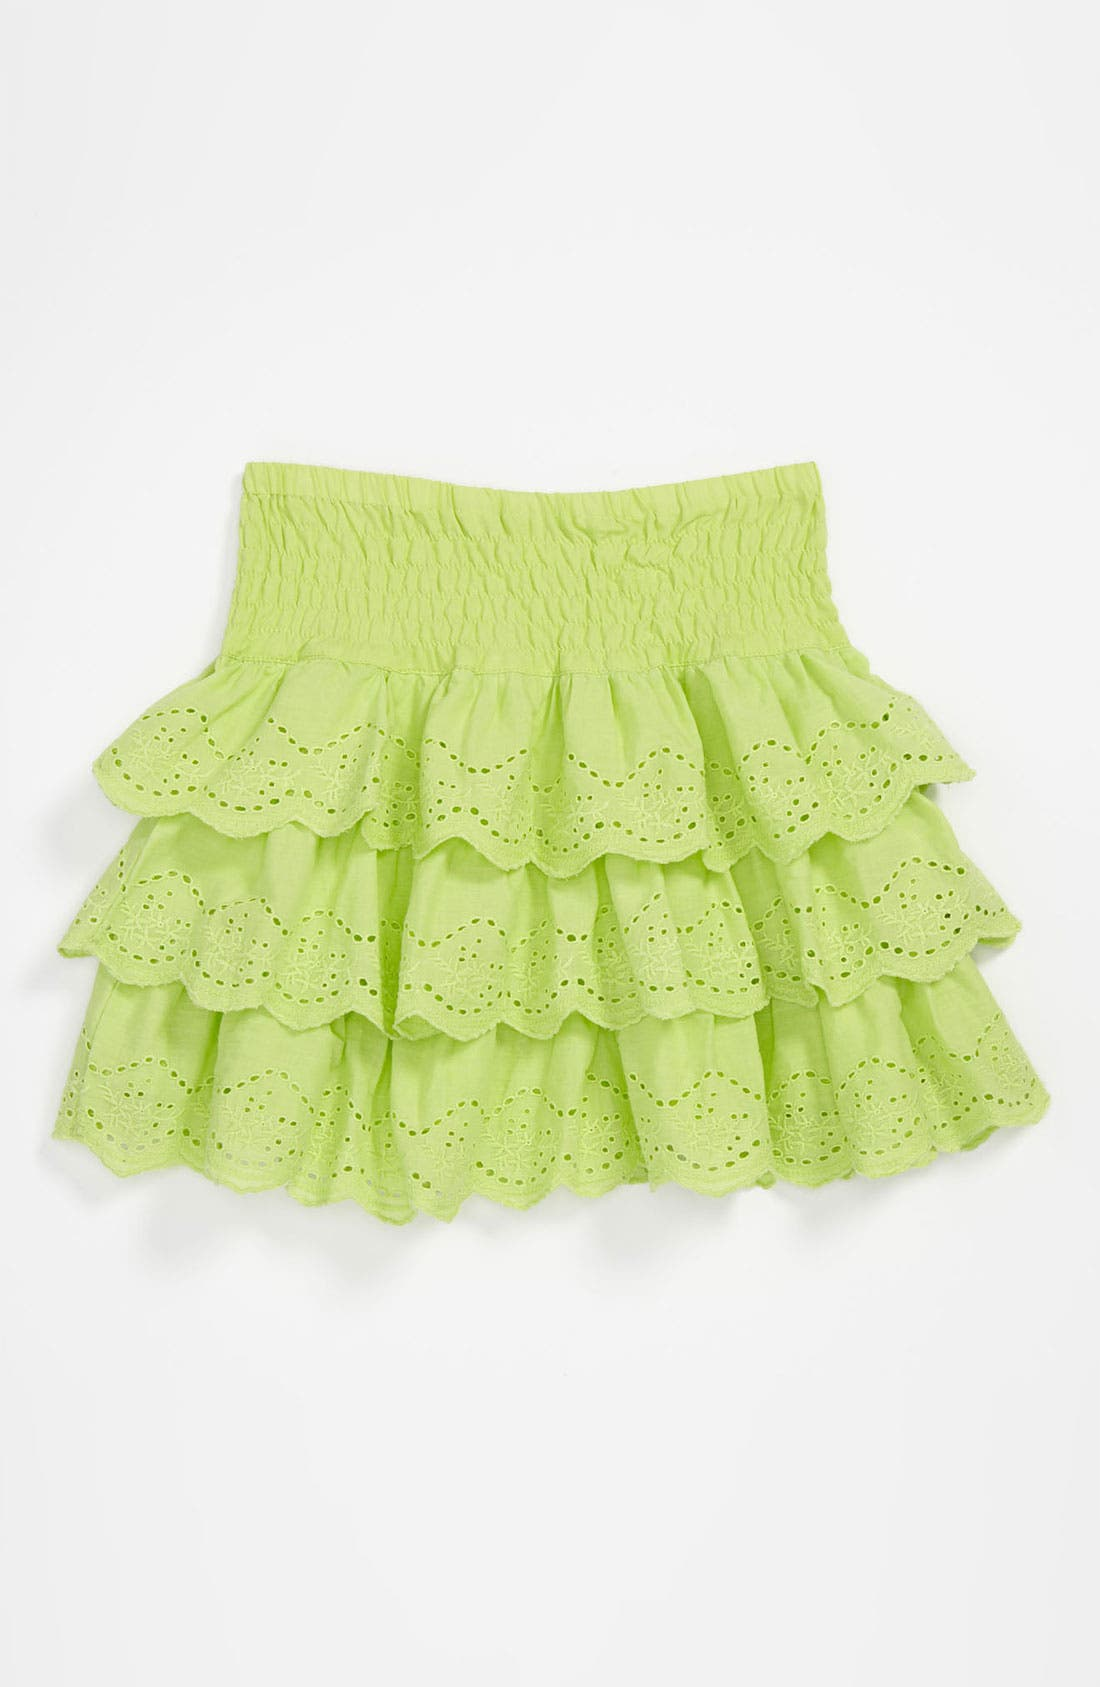 Alternate Image 1 Selected - Pumpkin Patch 'Anglaise' Tiered Eyelet Lace Skirt (Little Girls & Big Girls)